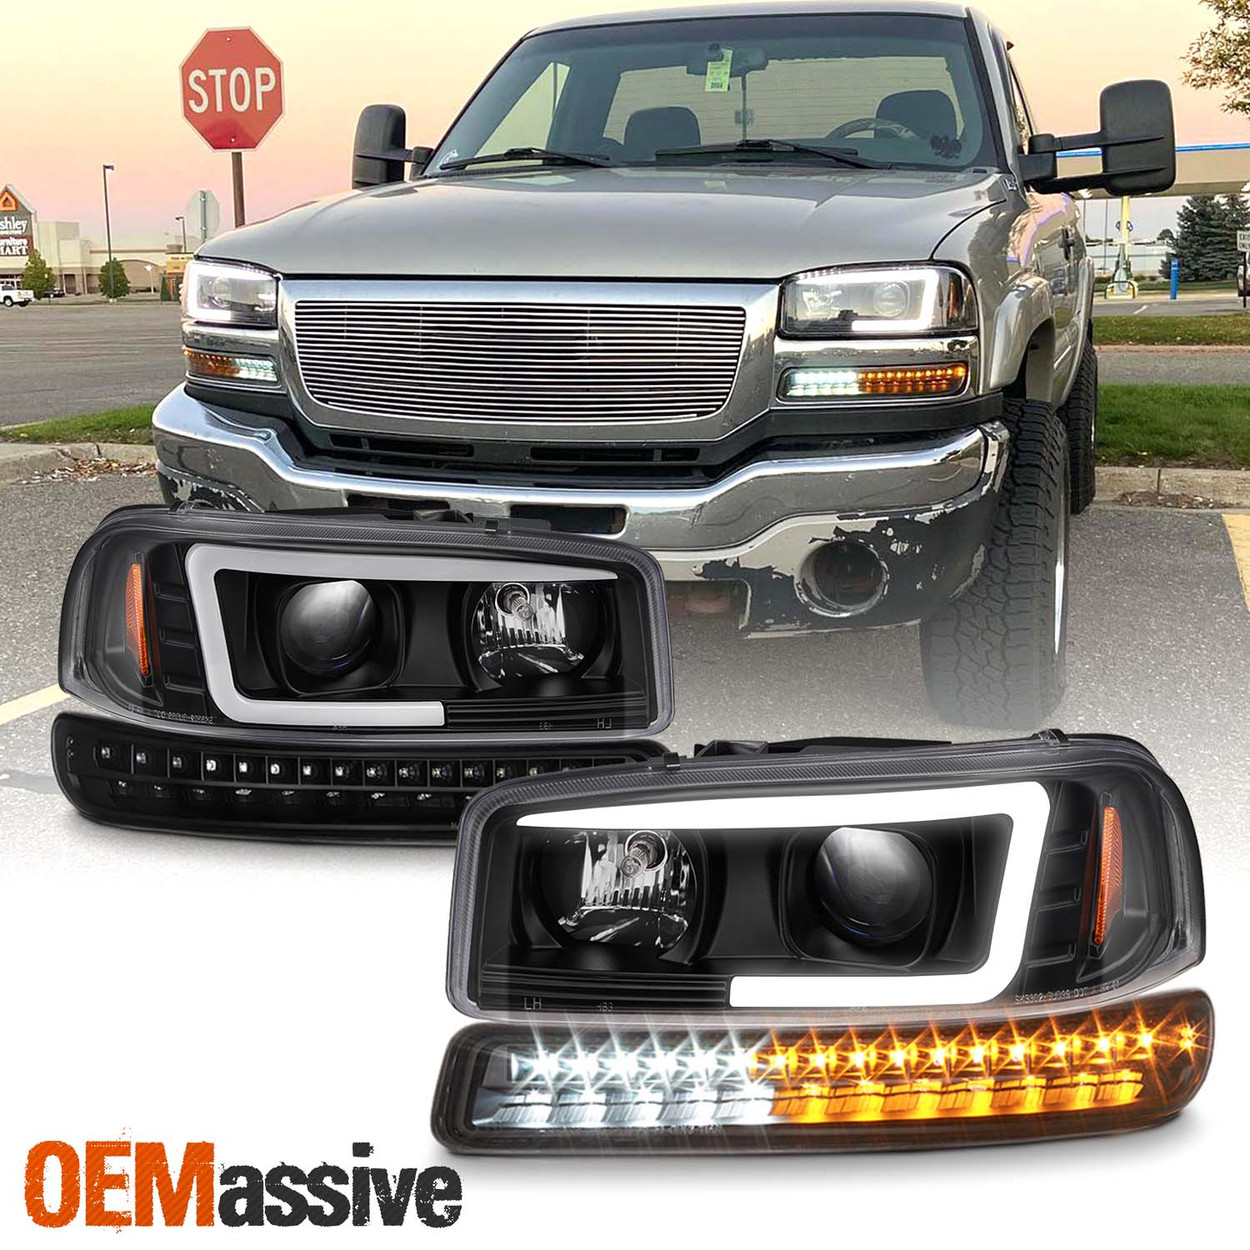 Details about  /Fits 99-06 Sierra Yukon Truck Black Smoked Dual Halo Projector LED Headlights